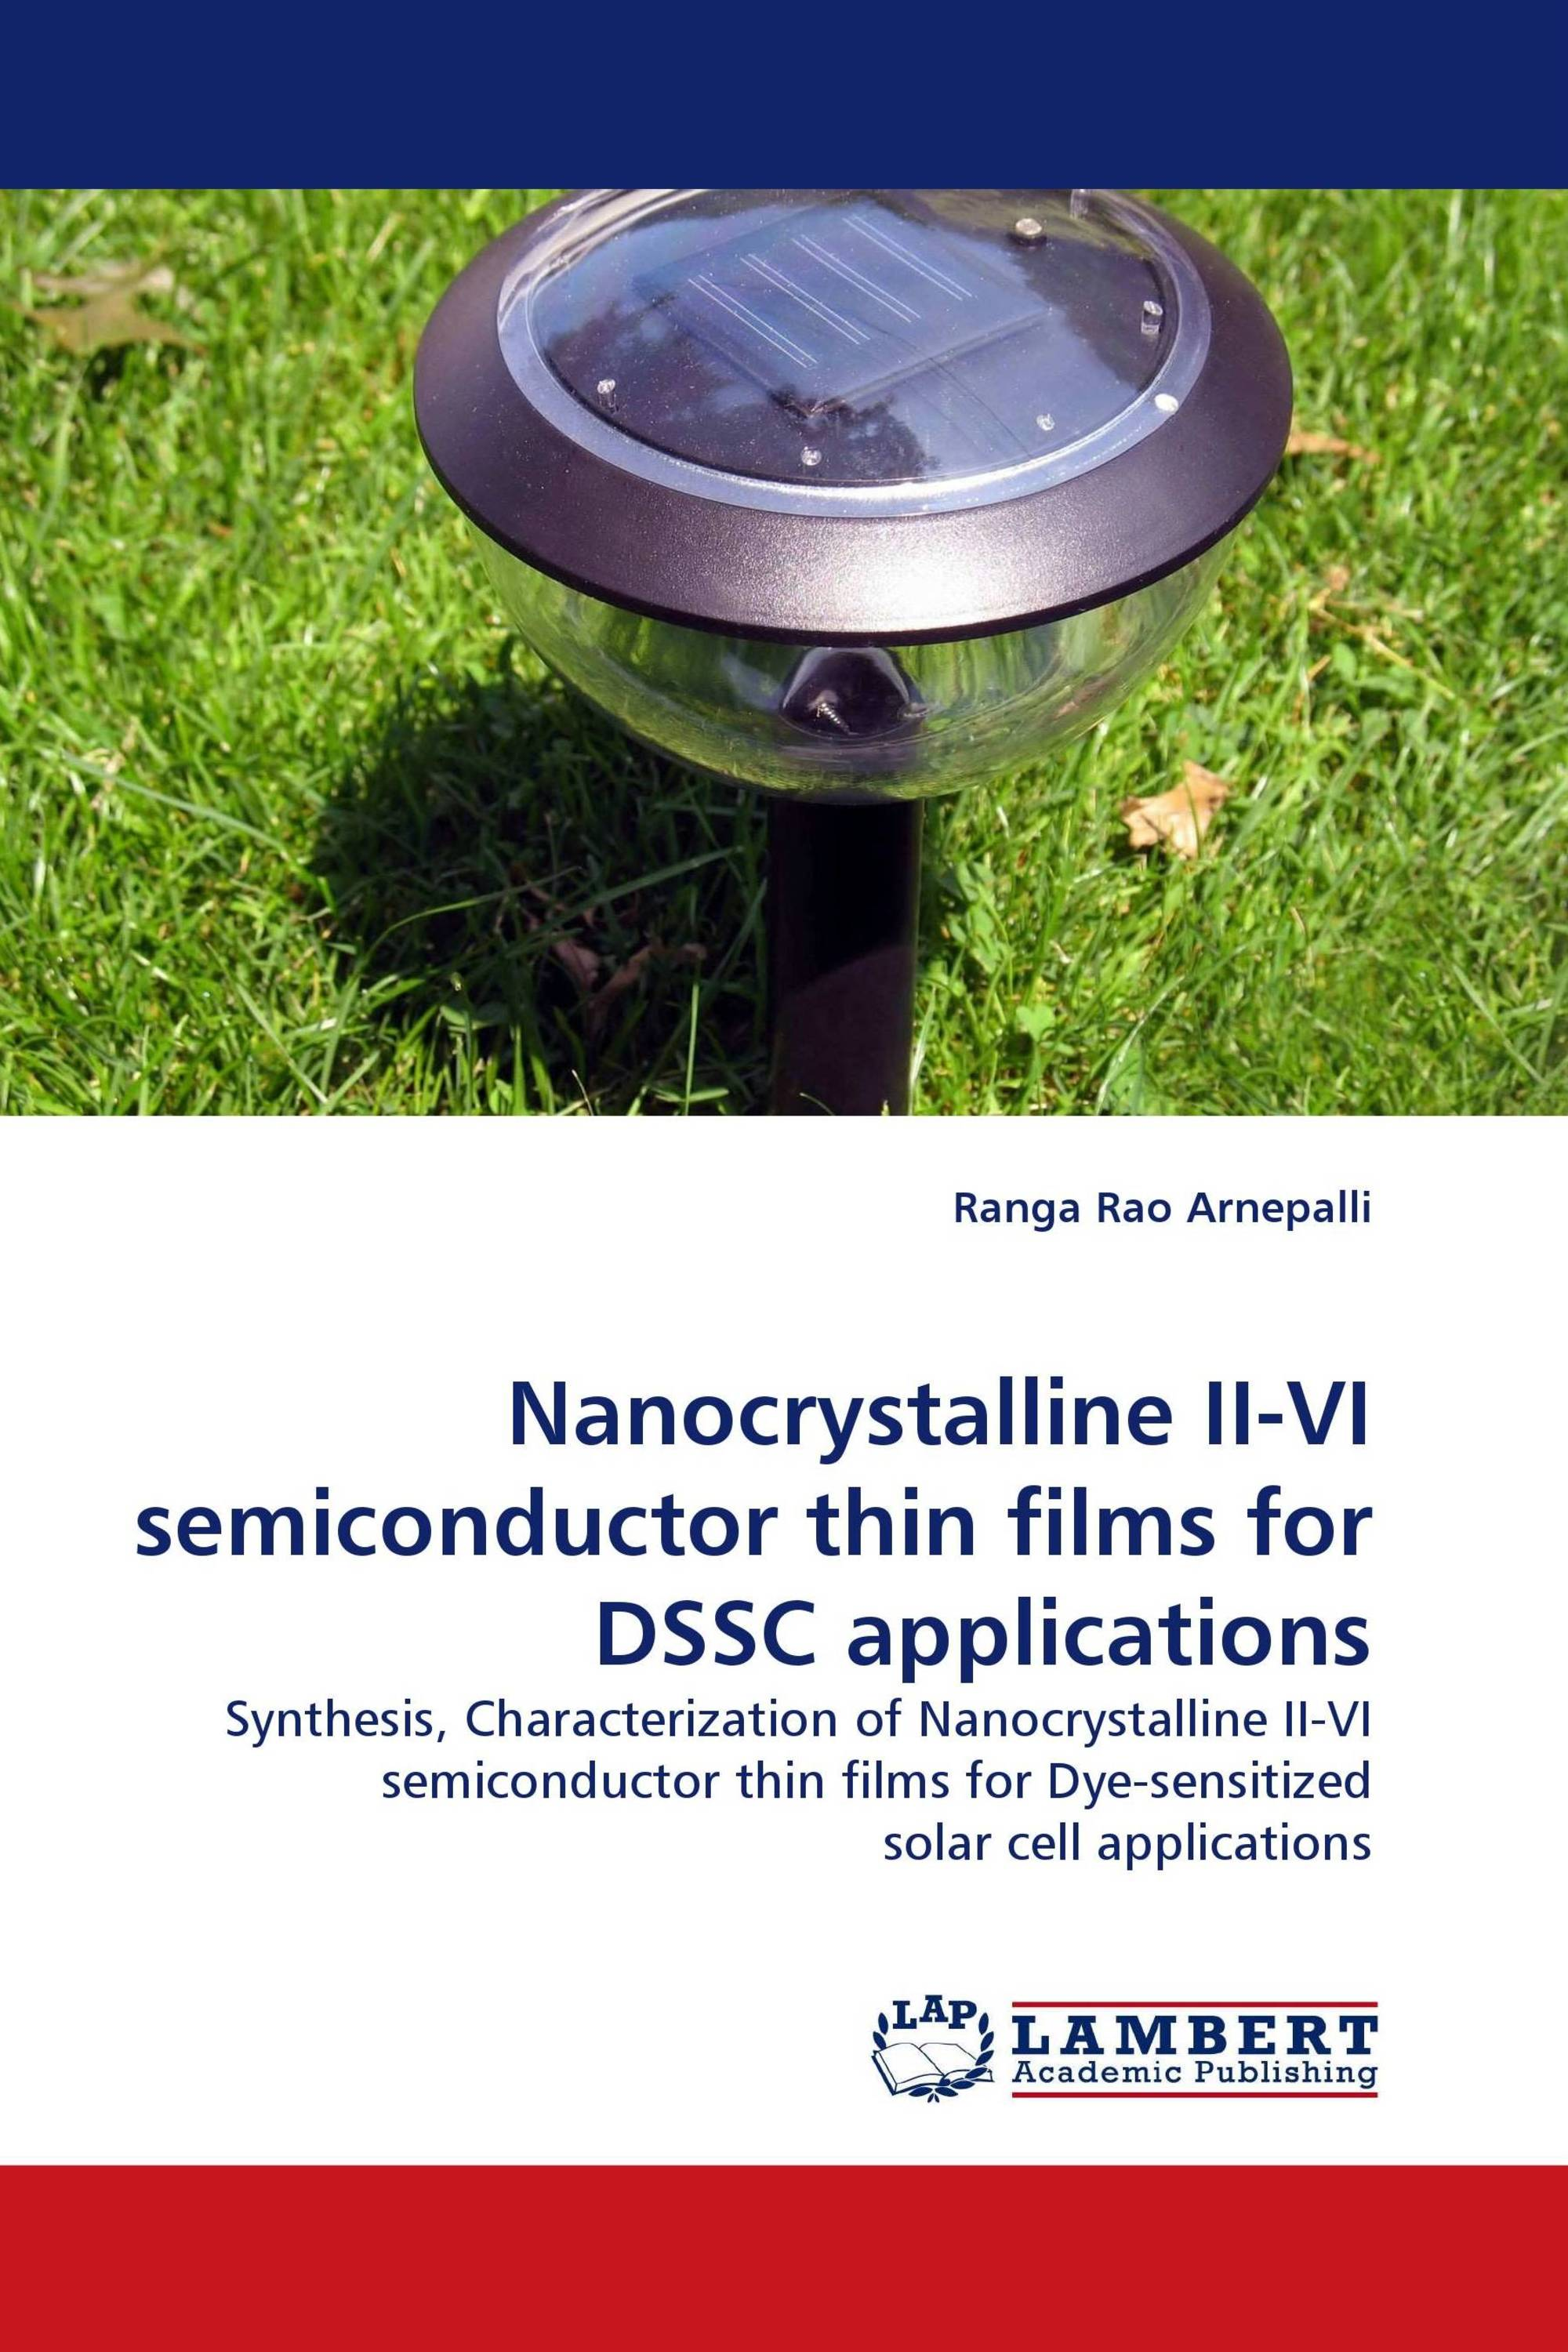 Nanocrystalline II-VI semiconductor thin films for DSSC applications